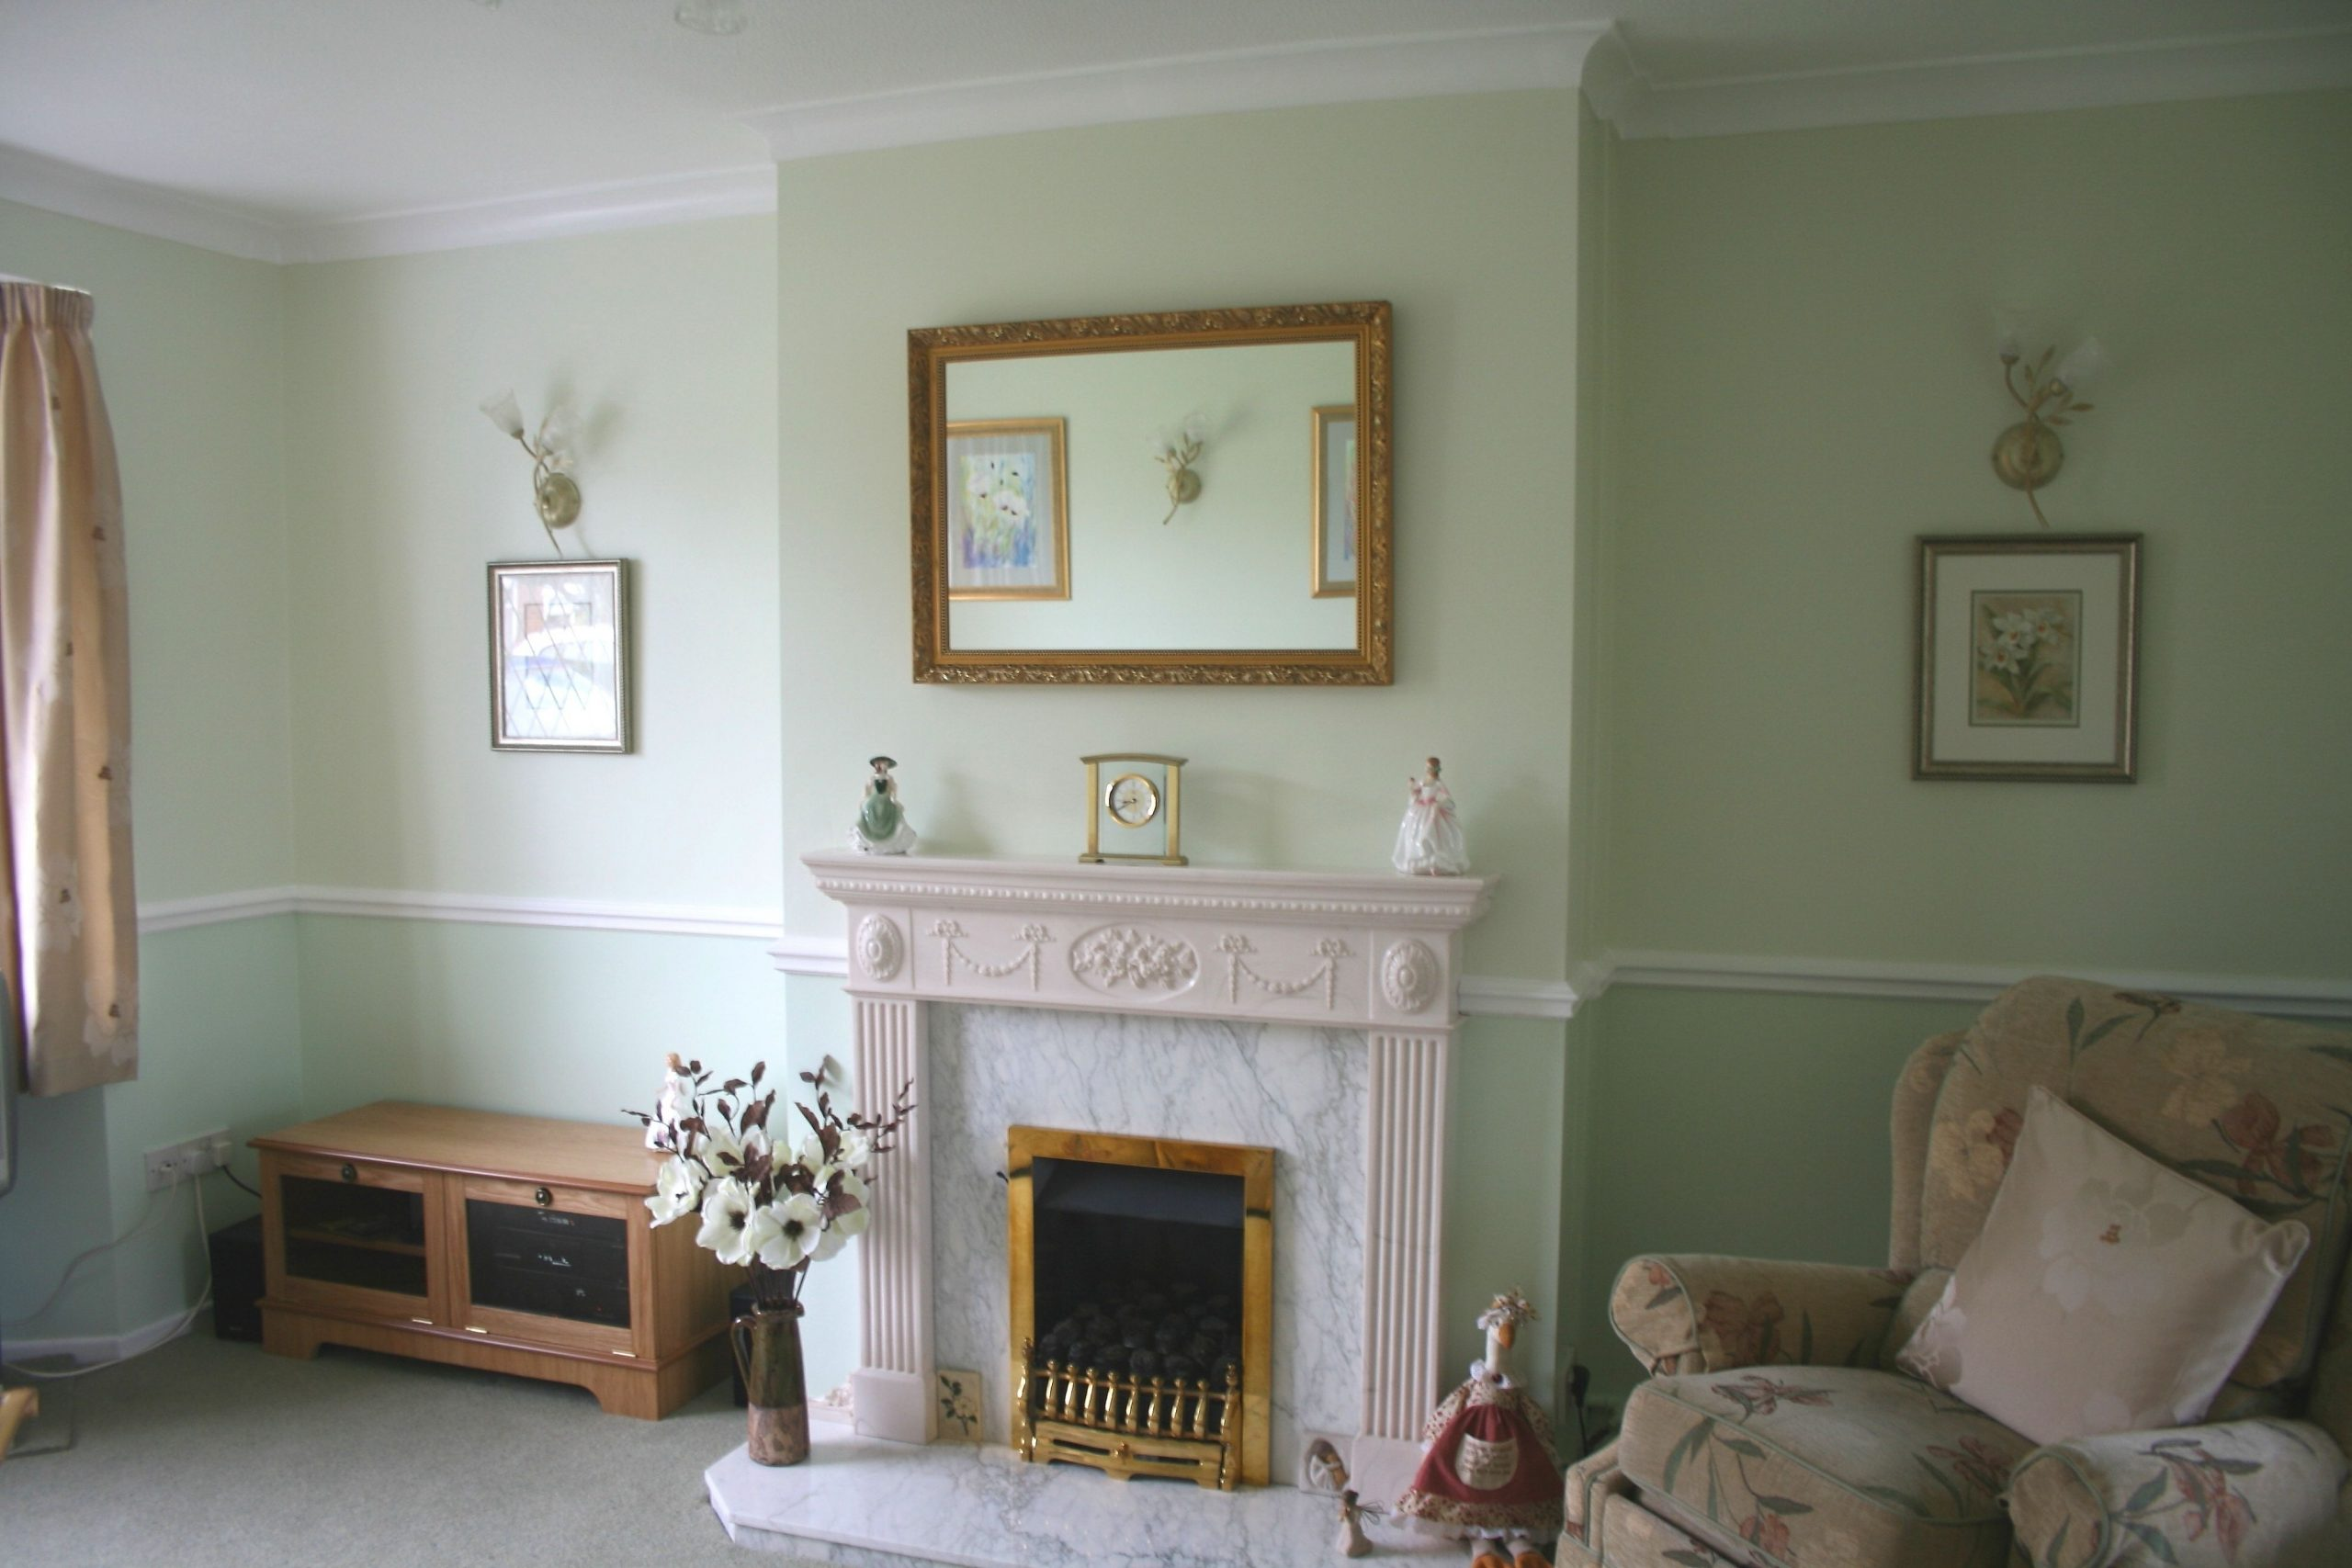 Decorating Ideas For Living Room With Dado Rail We Spend 20+ Dado Rail Living Room Ideas